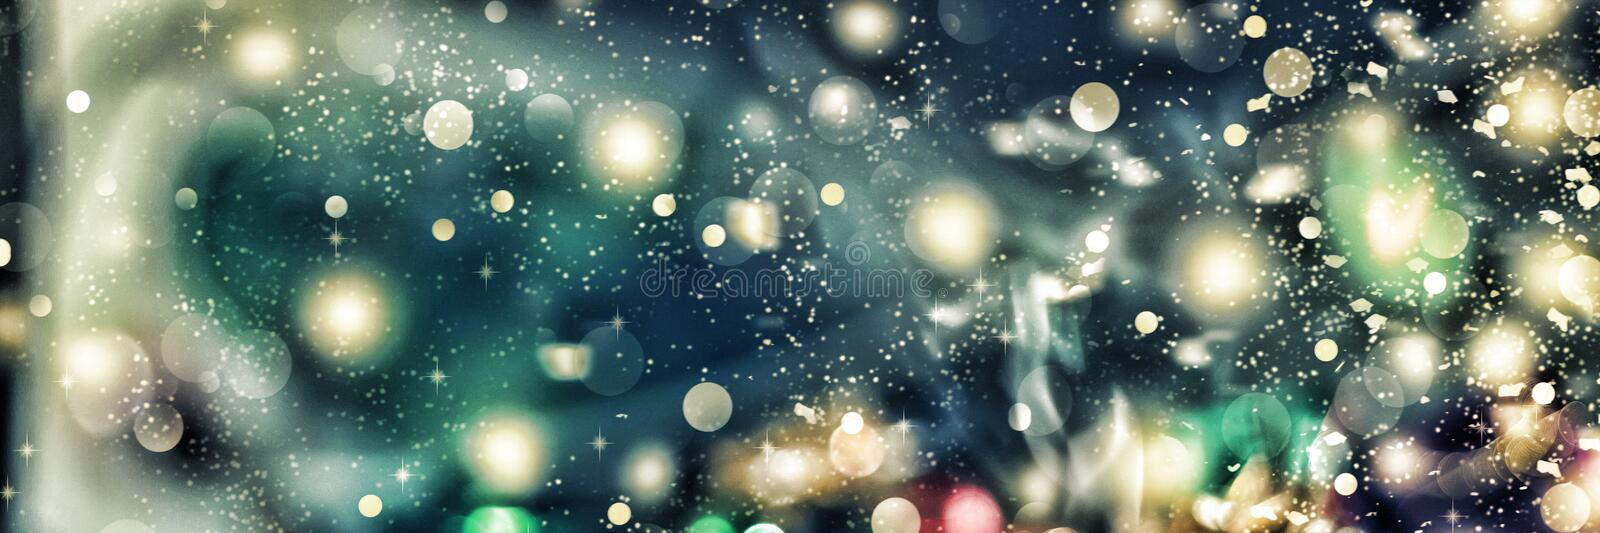 Abstract background. Christmas background, Christmas. royalty free stock images